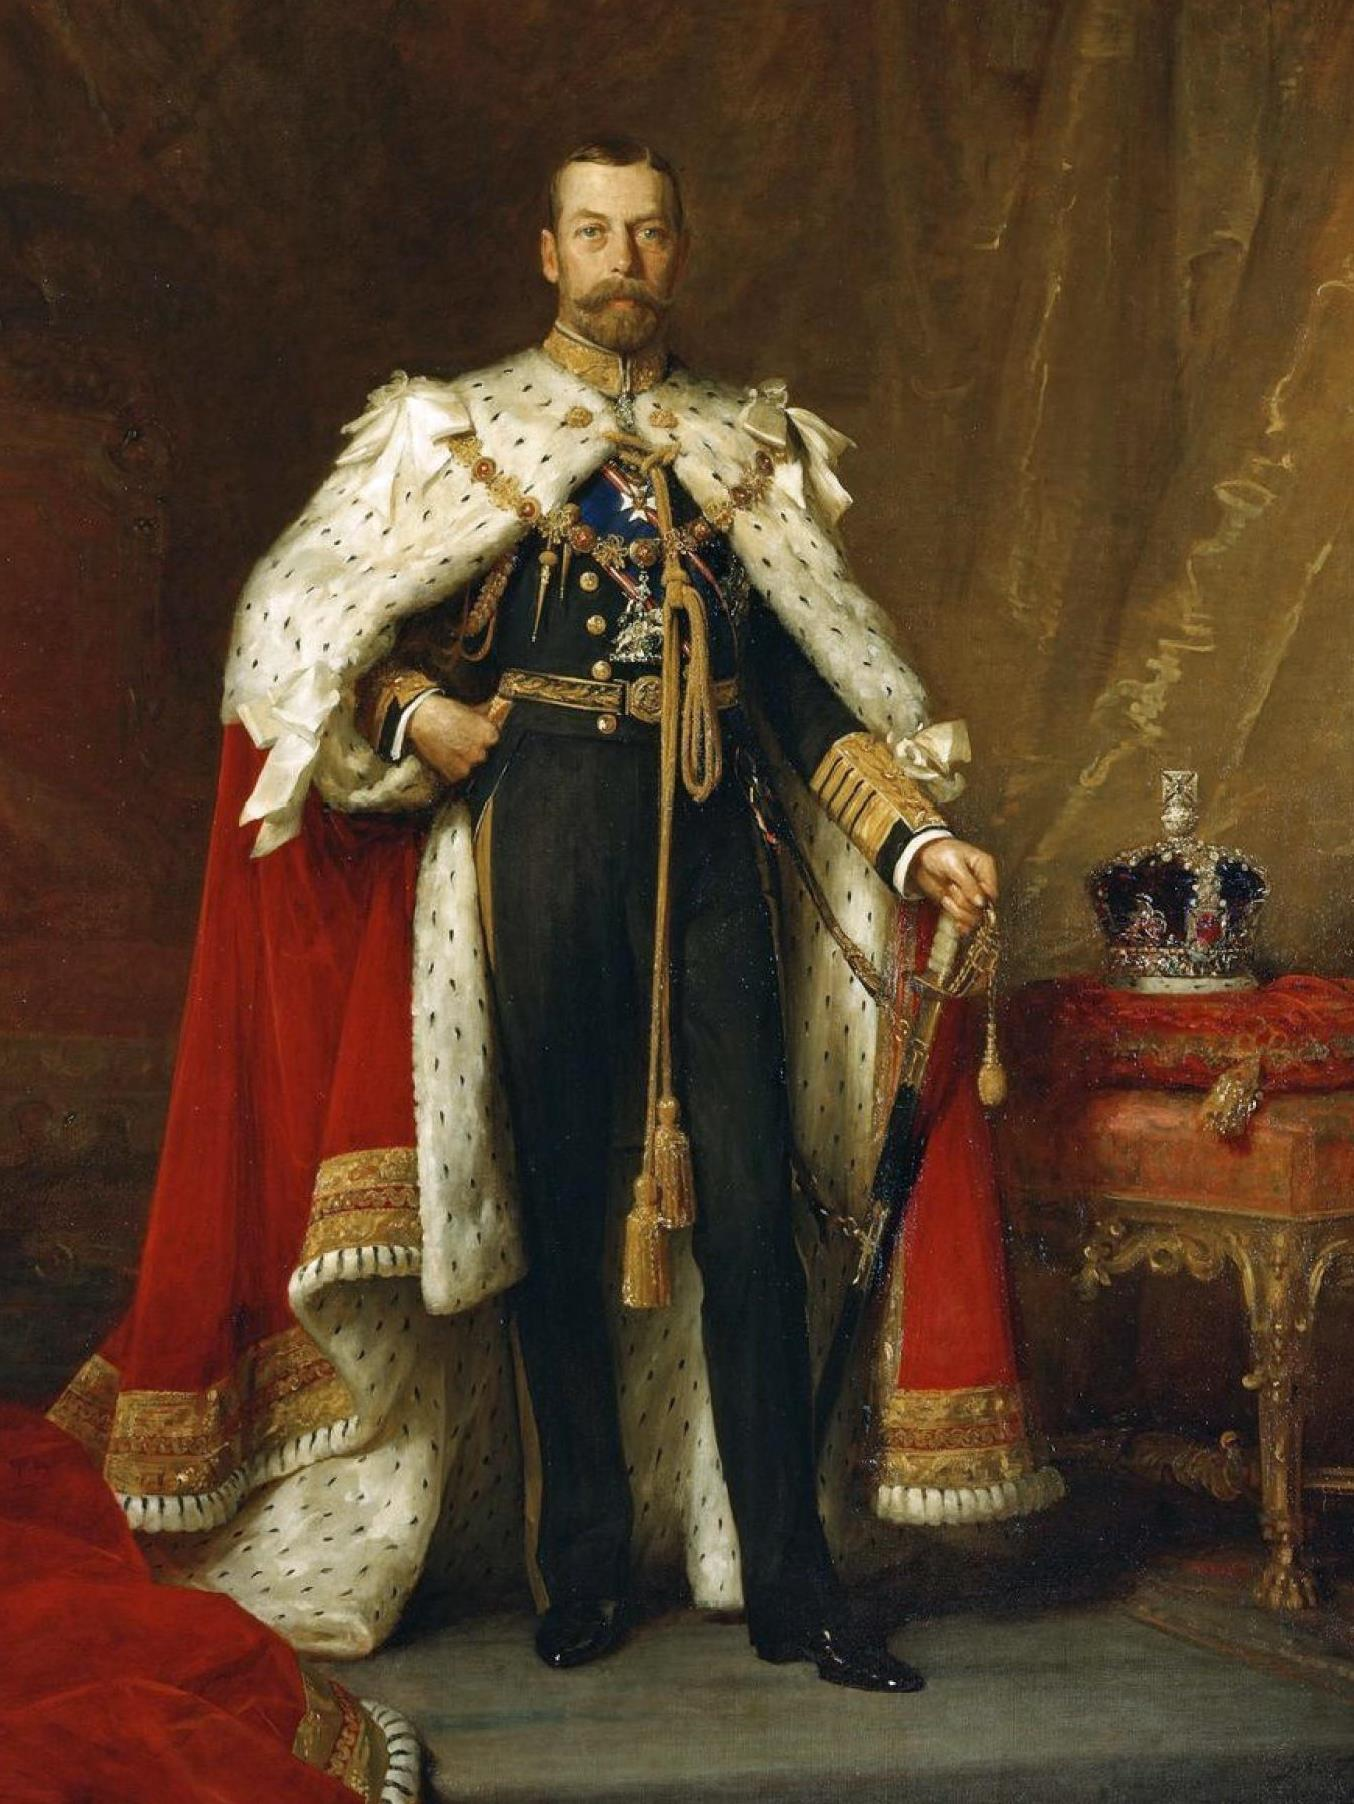 State portrait of King George V in coronation robes by Sir Luke Fildes, 1911